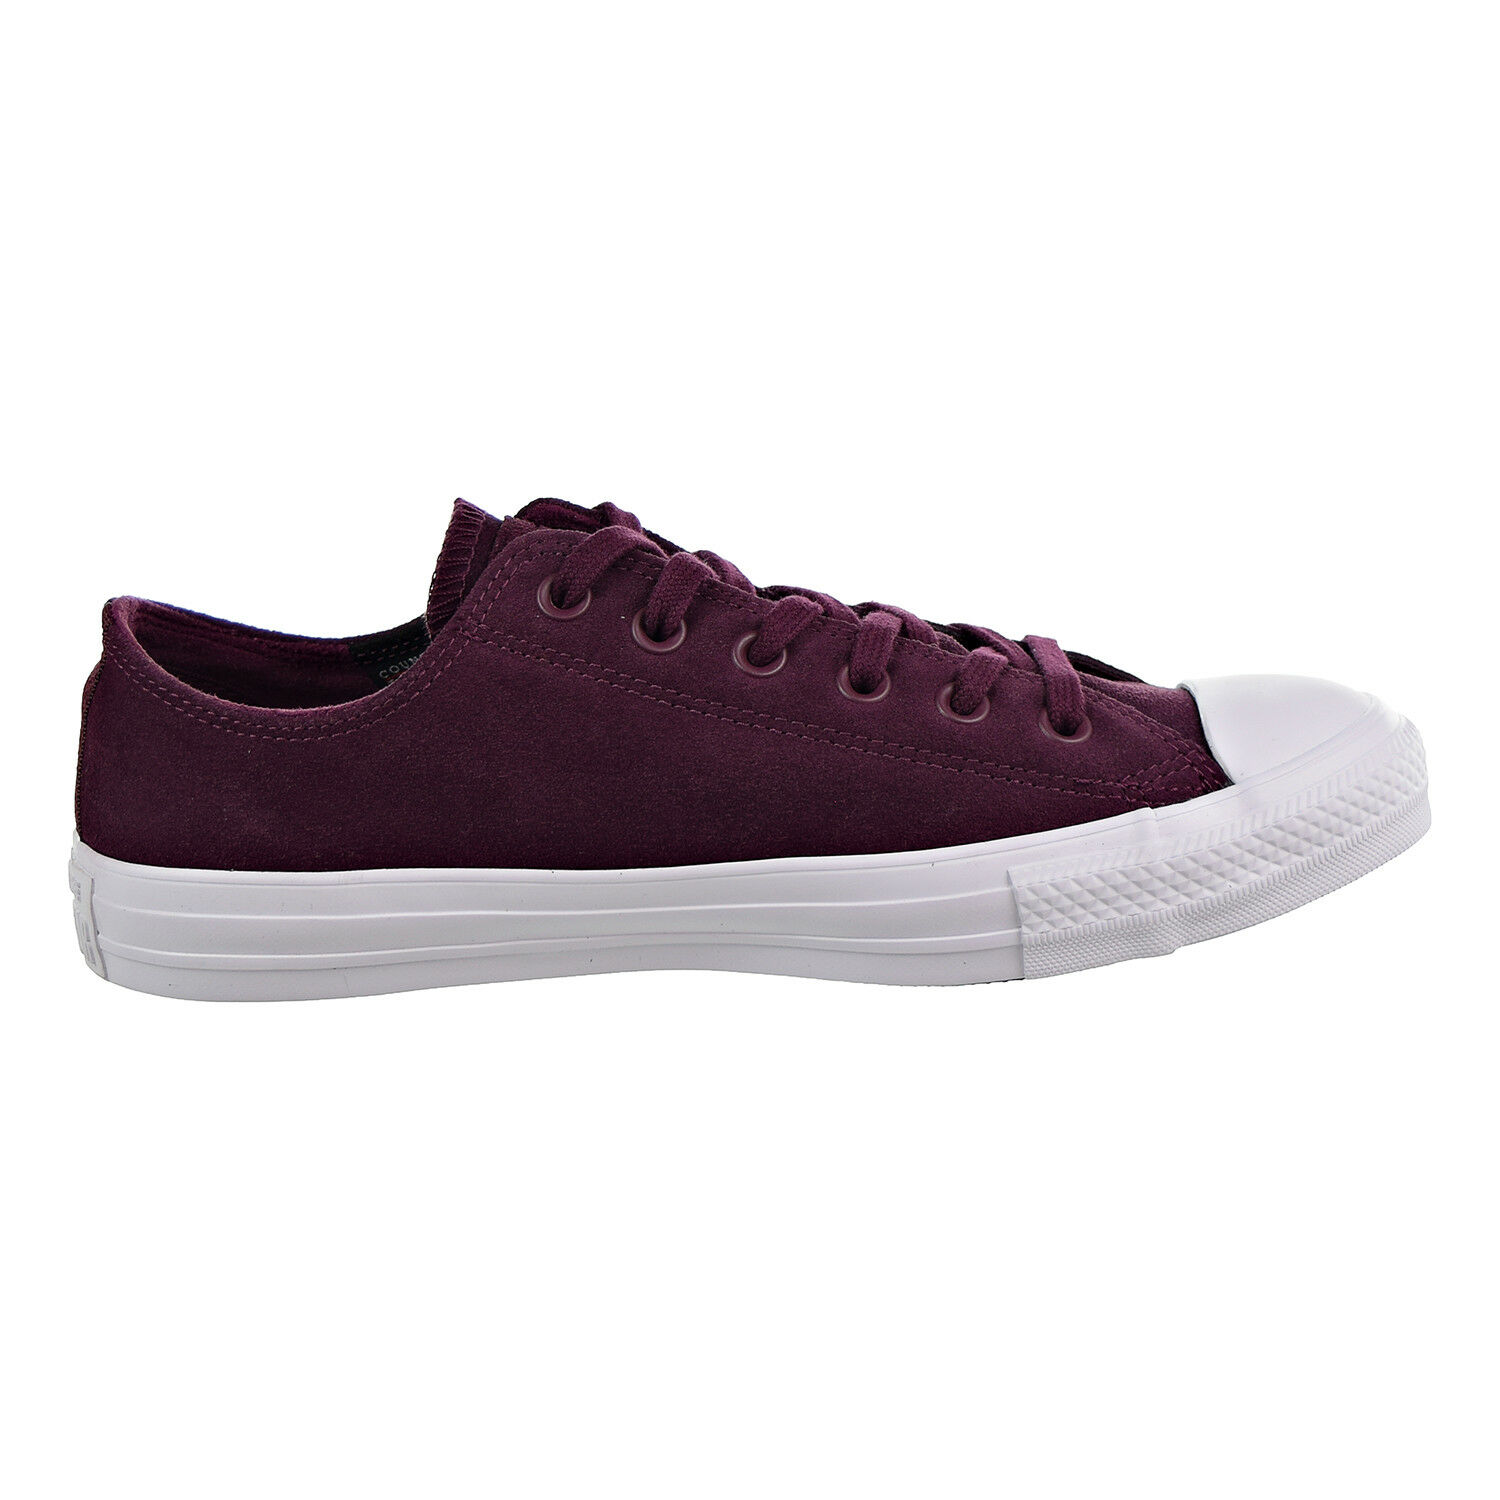 Converse CT All Star Ox Counter Climate Unisex Shoes Dark Sangria/White 157599c